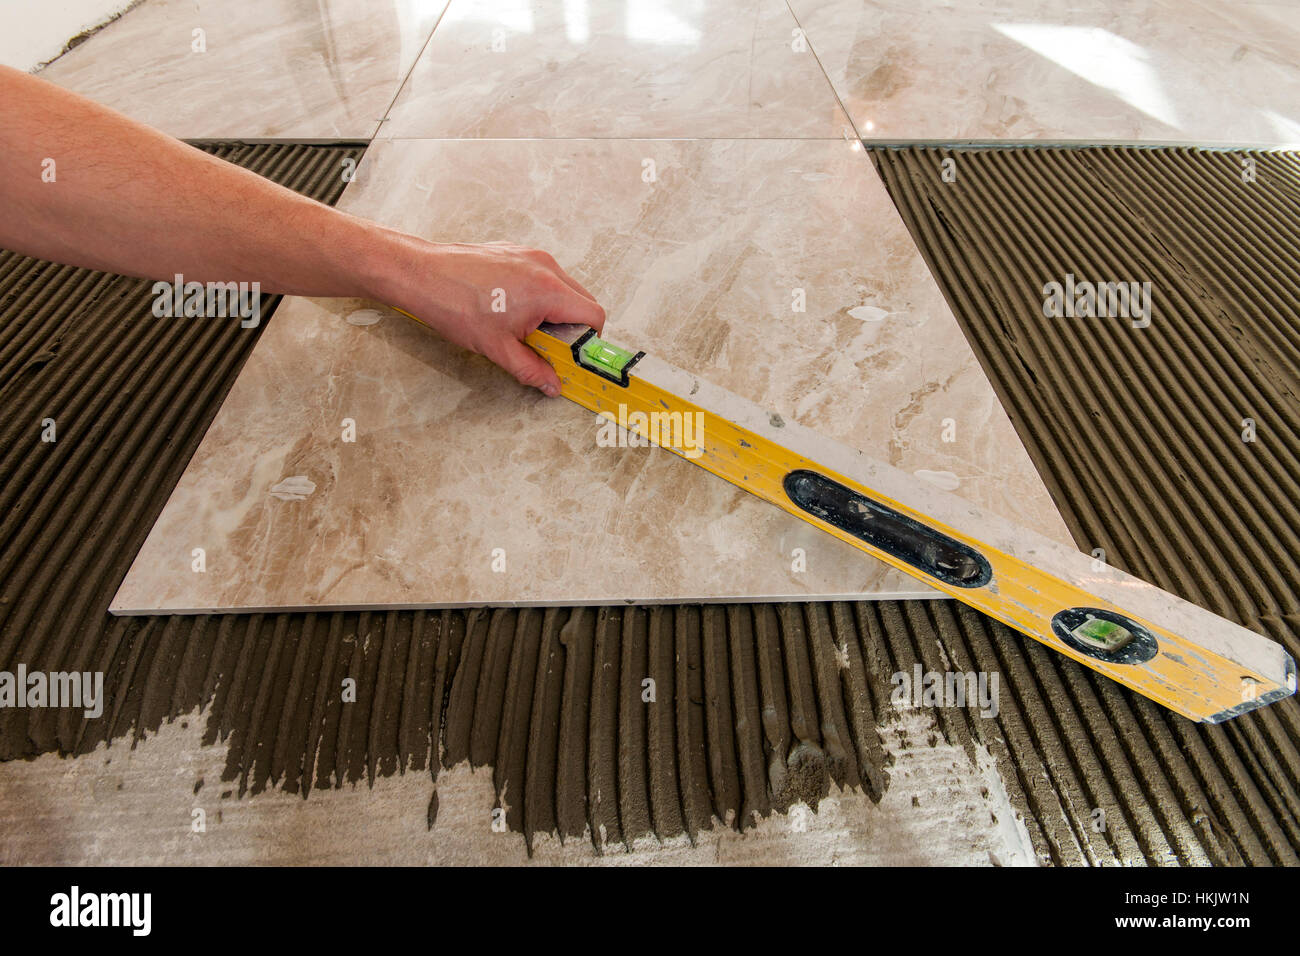 Ceramic tiles and tools for tiler floor tiles installation home ceramic tiles and tools for tiler floor tiles installation home improvement renovation ceramic tile floor adhesive mortar level dailygadgetfo Choice Image